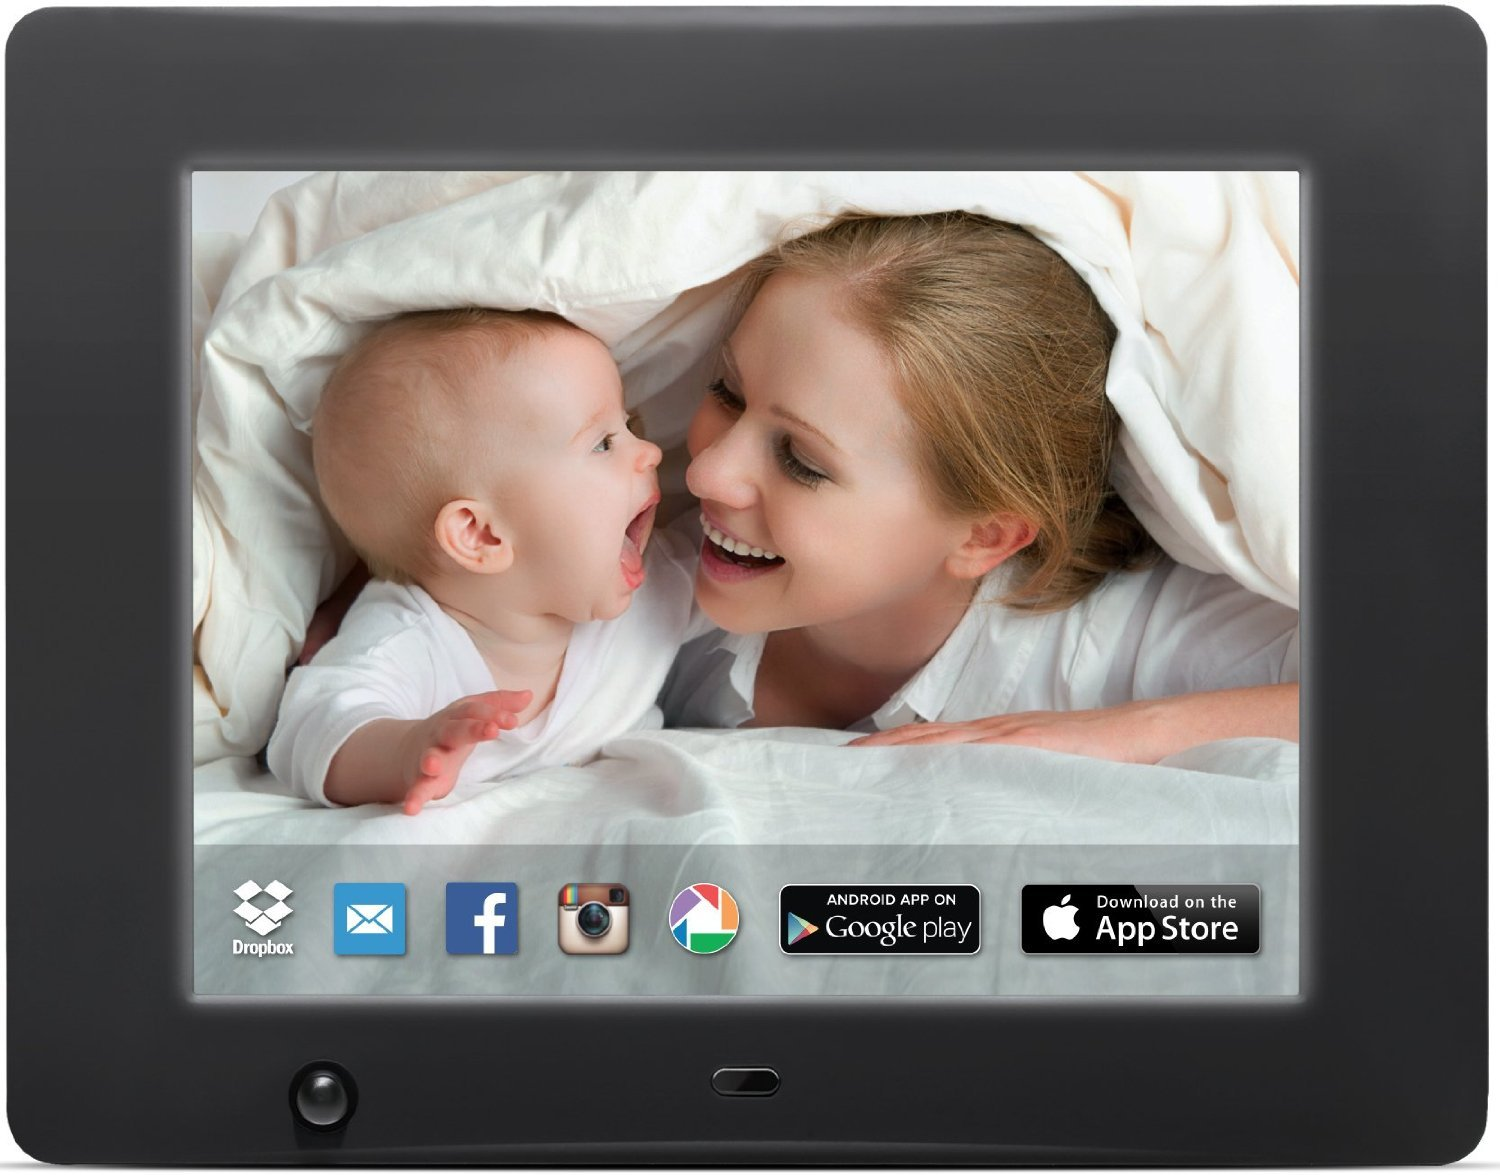 nixplay 8-Inch Wi-Fi Cloud Digital Photo Frame: Amazon.co.uk: Camera ...